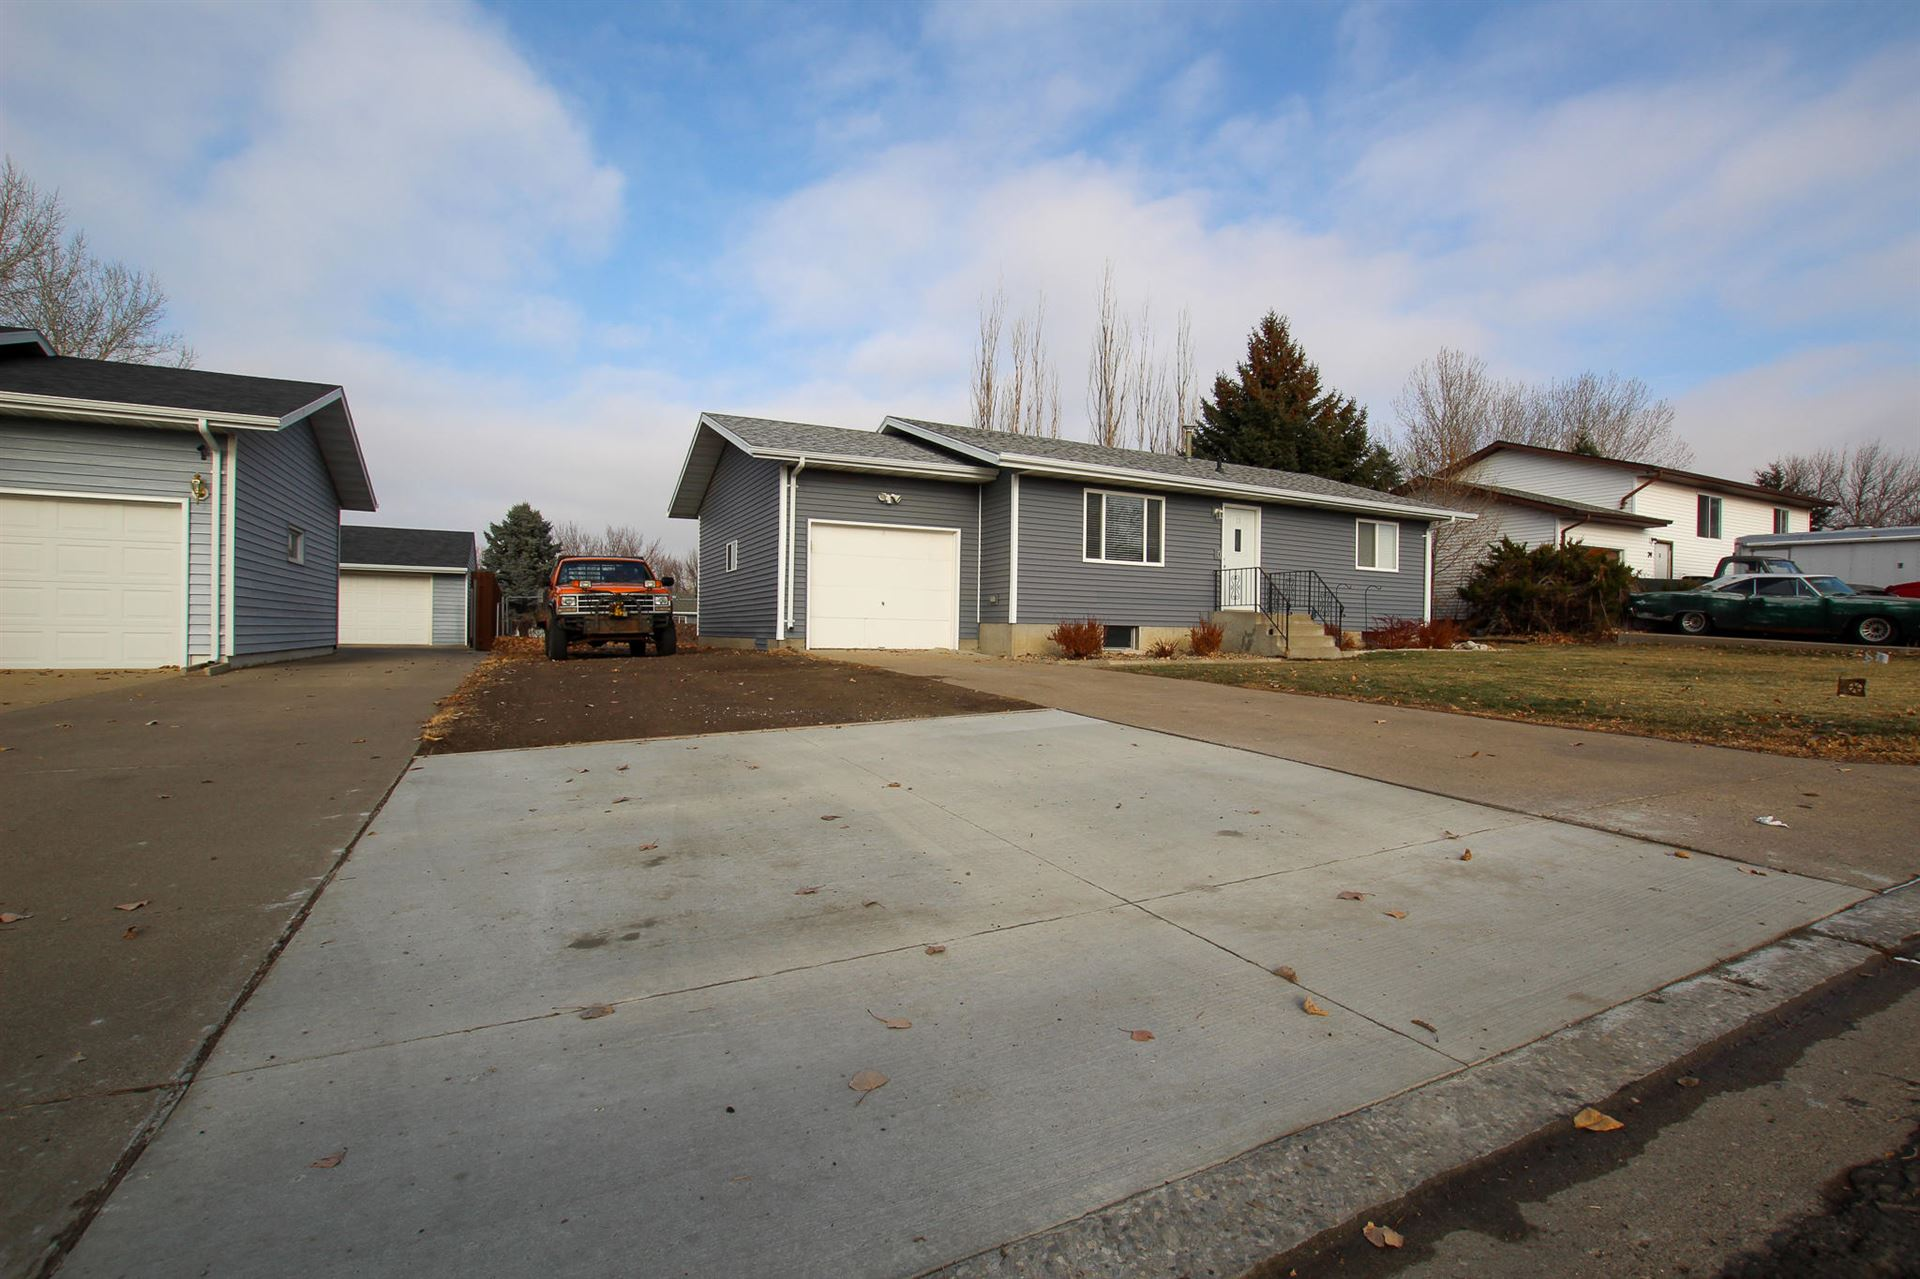 72 Custer Drive, Lincoln, ND 58504 - #: 409047